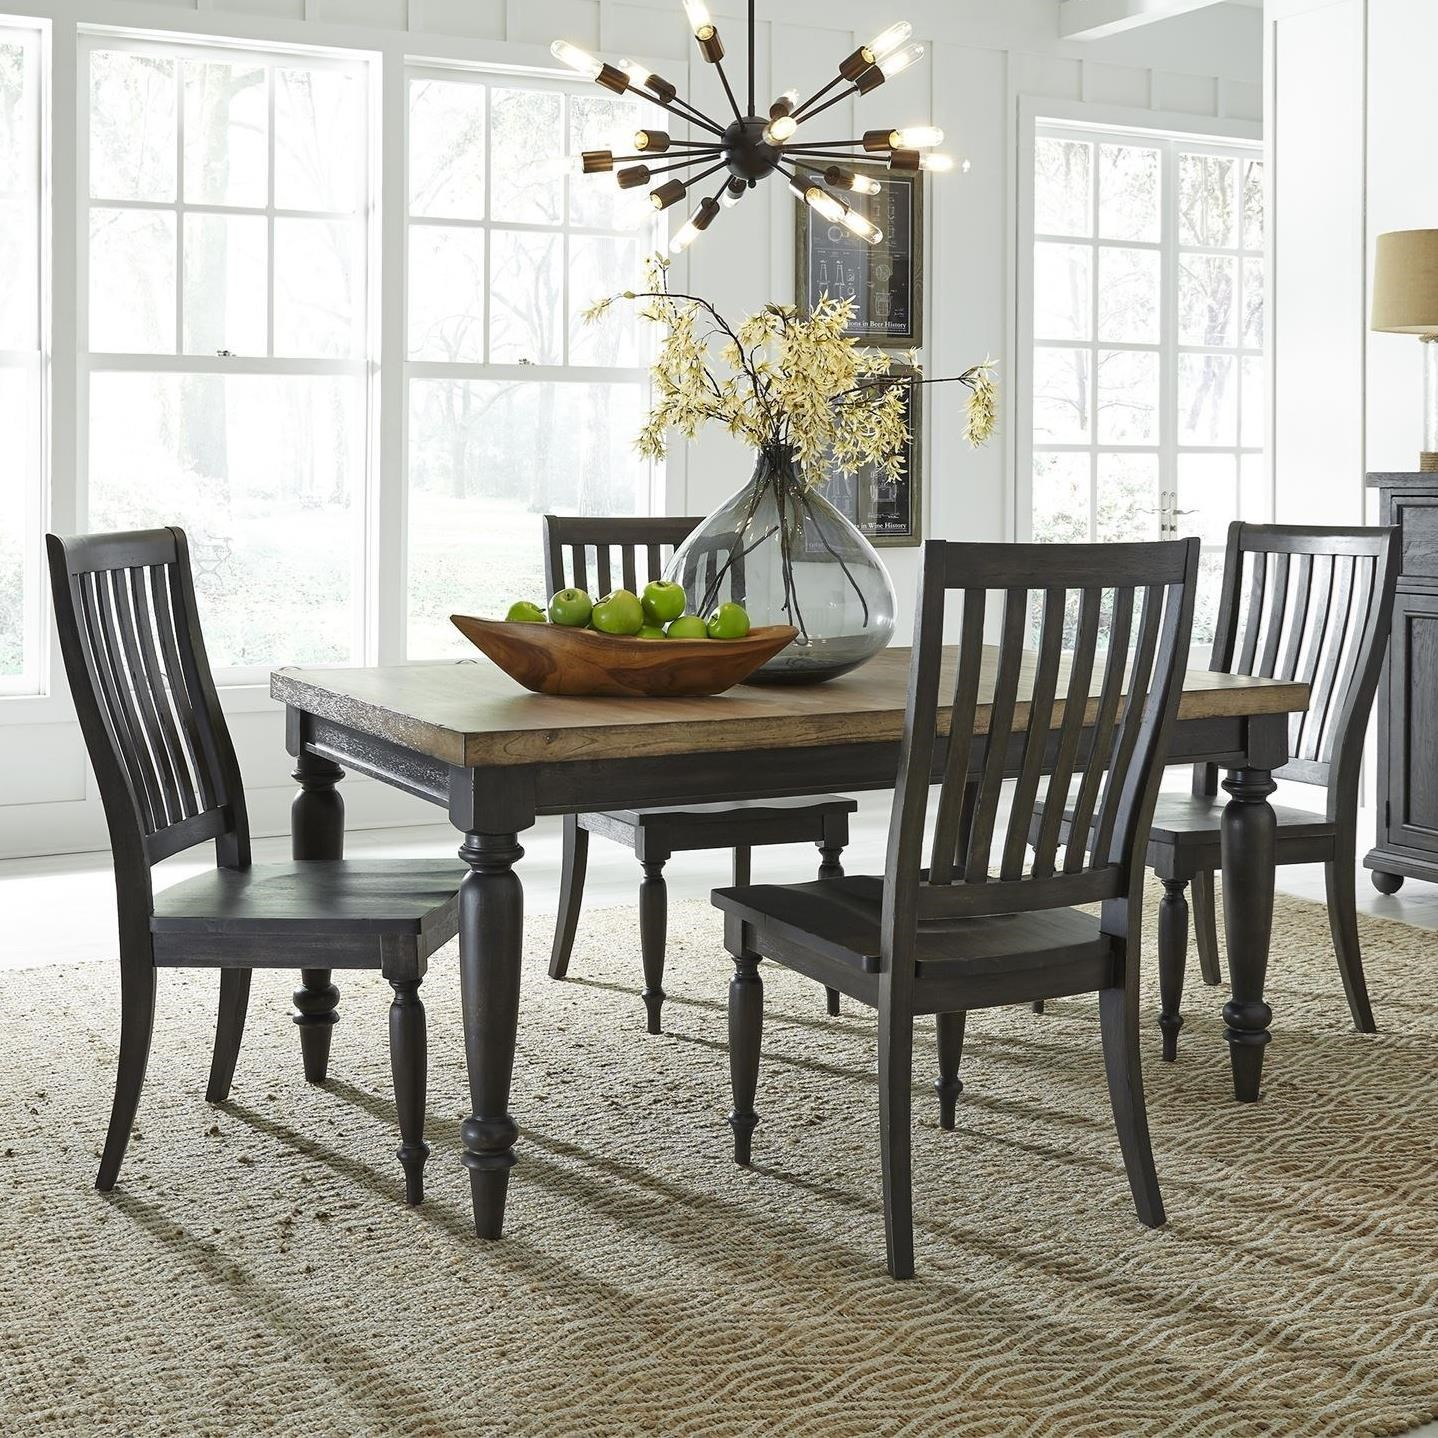 Harvest Home 5-Piece Rectangular Table Set by Libby at Walker's Furniture